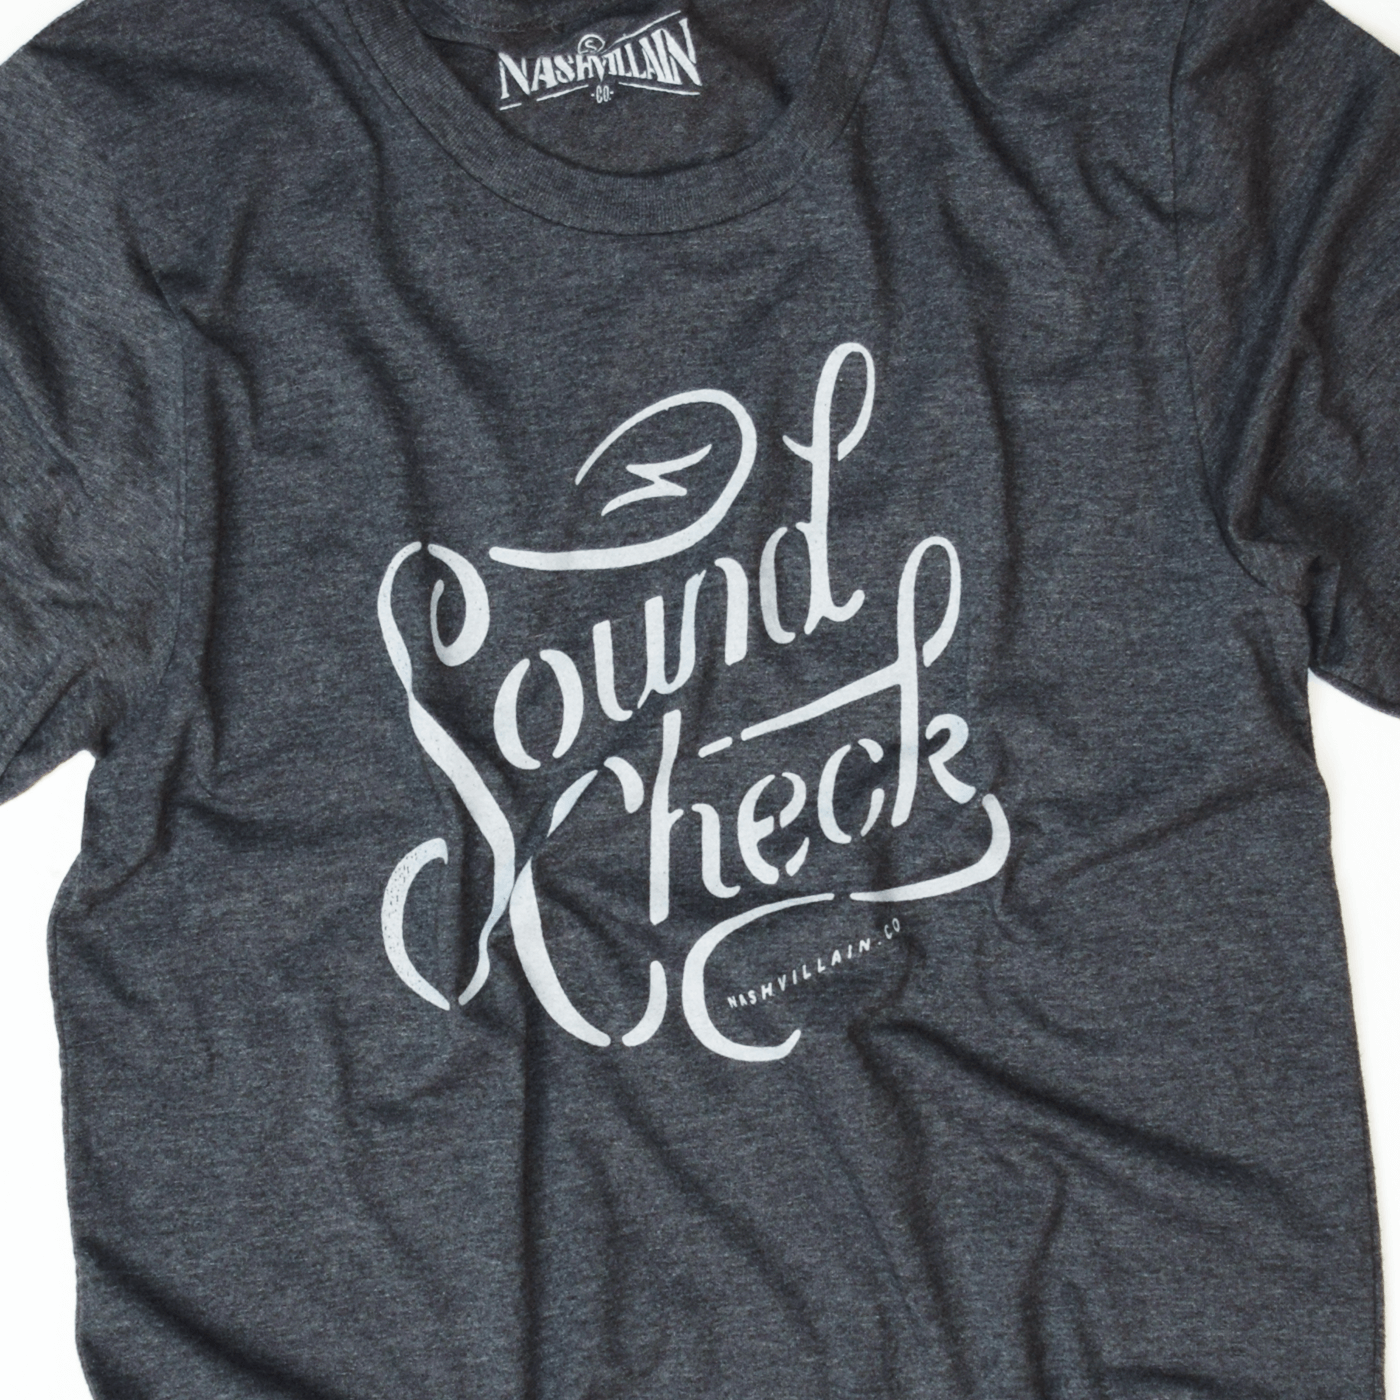 Soundcheck Nashvillain.co white ink design on charcoal shirt